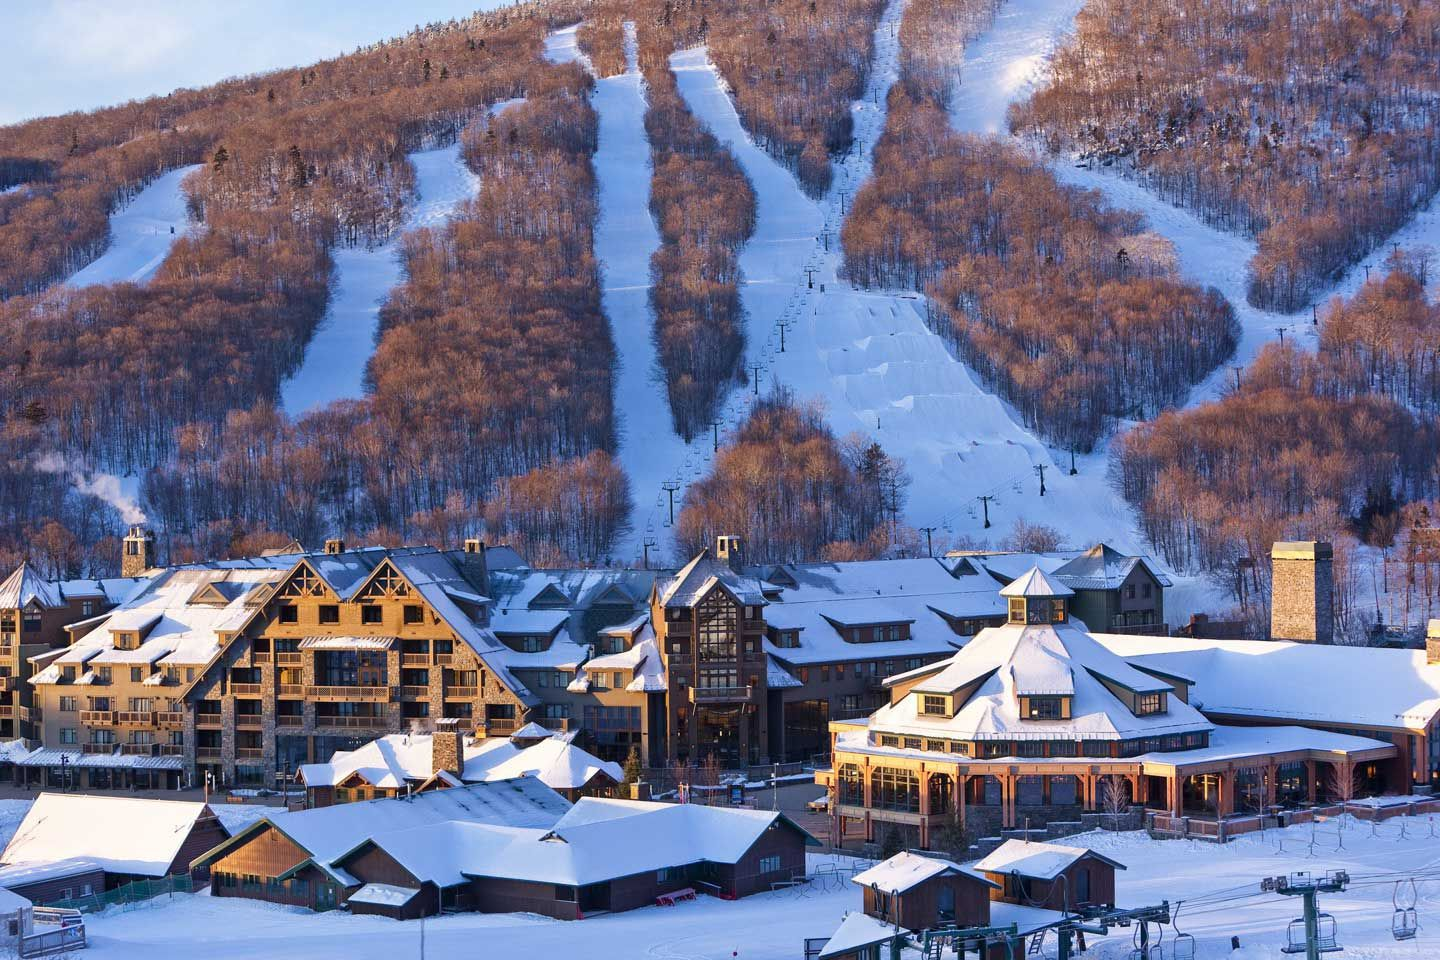 Best Winter Vacations Ideas Fun Cold Winter Getaways - The 8 best places to travel in january 2016